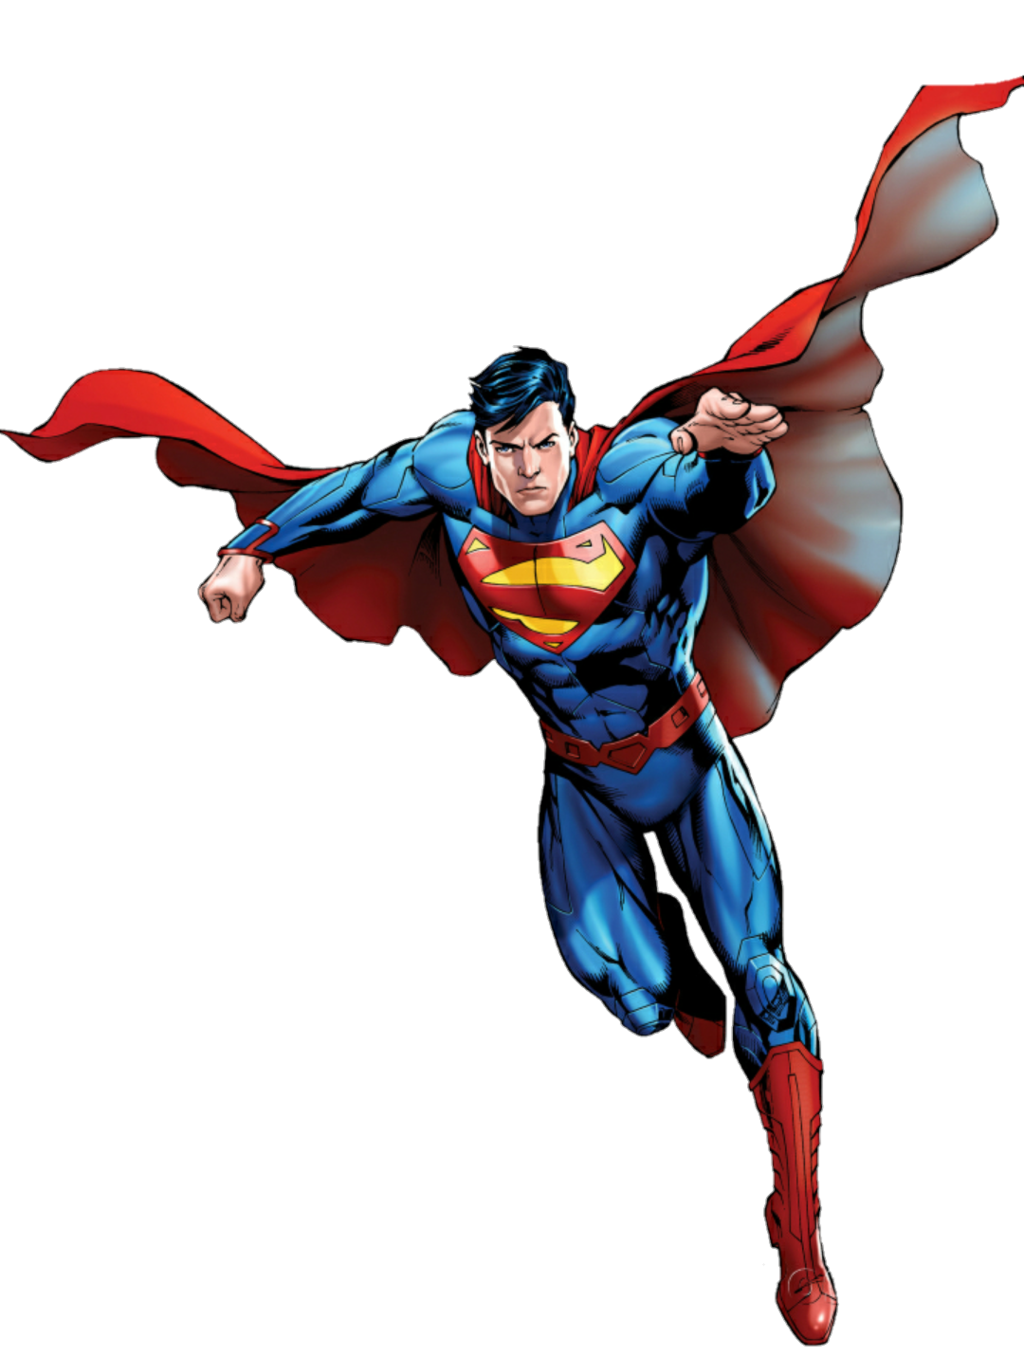 Superman new 52 clipart banner transparent library Pin by Udash on Clipart | Superman, Drawing superheroes, Comics banner transparent library